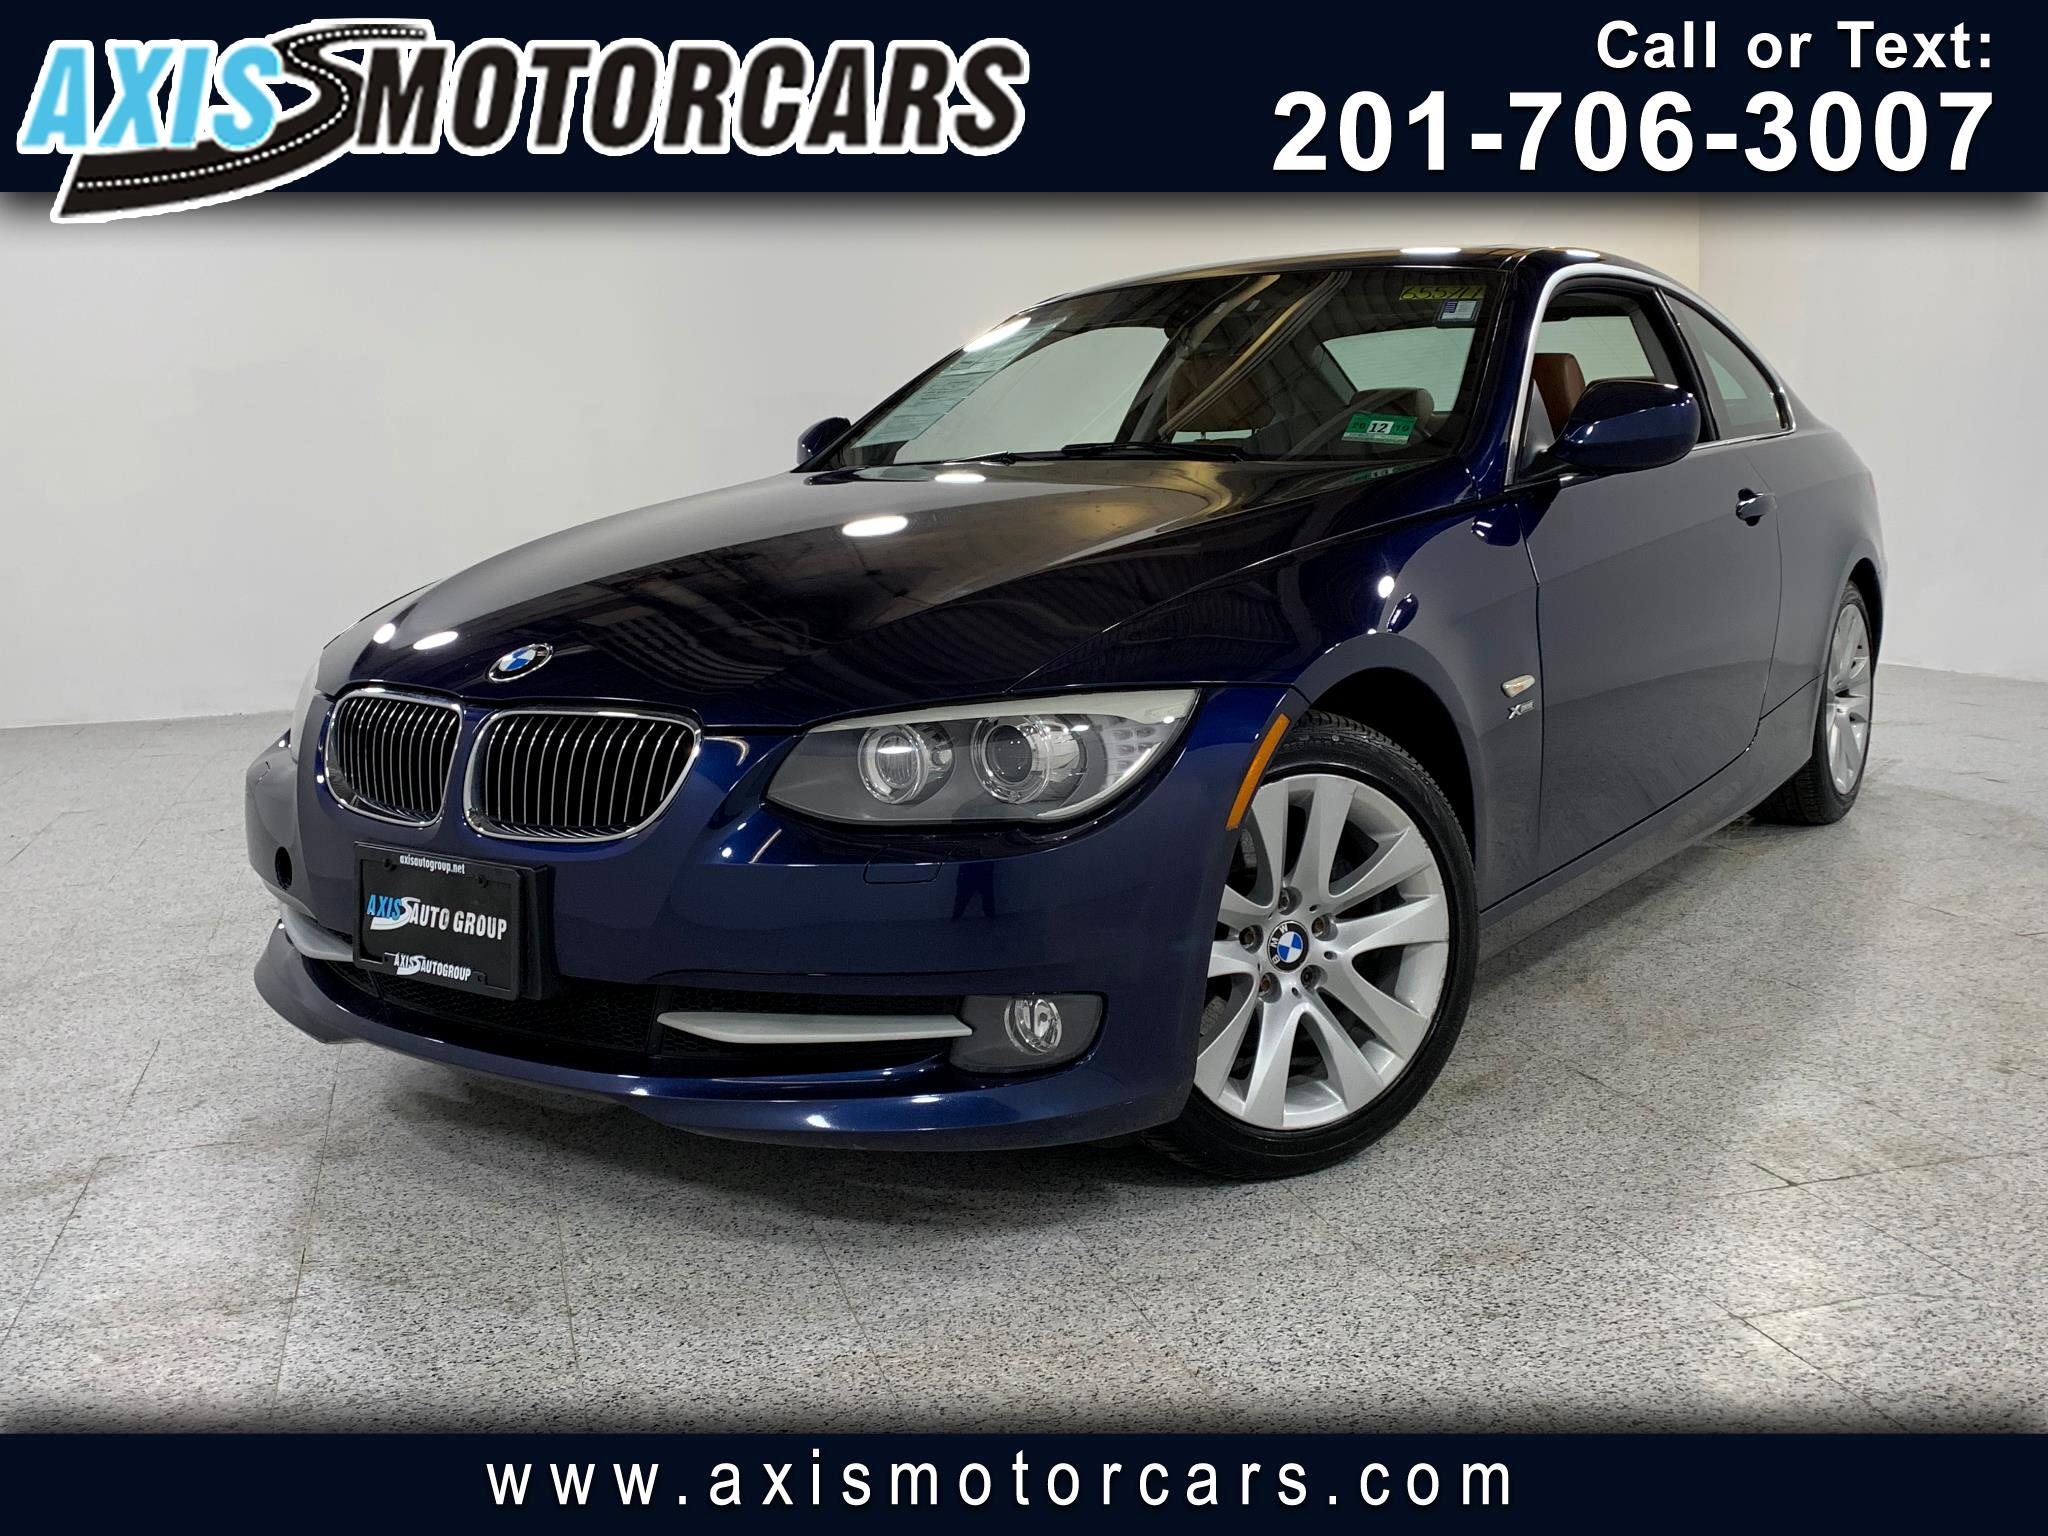 2011 BMW 328i xDrive Cpe w/Sun Roof  Leather